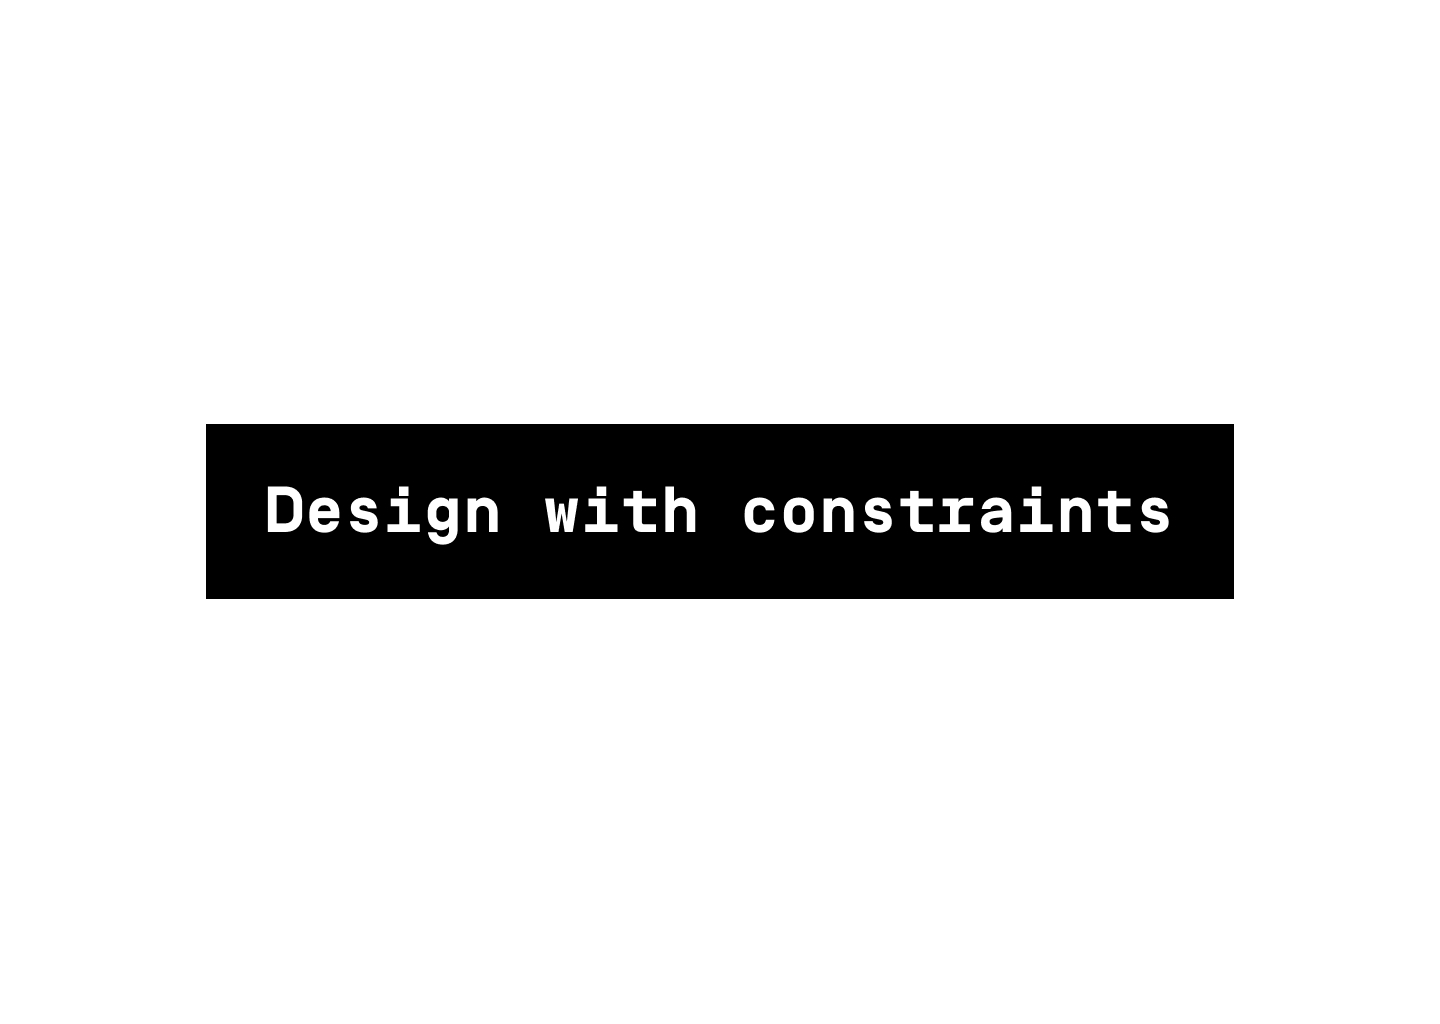 Design with constraints